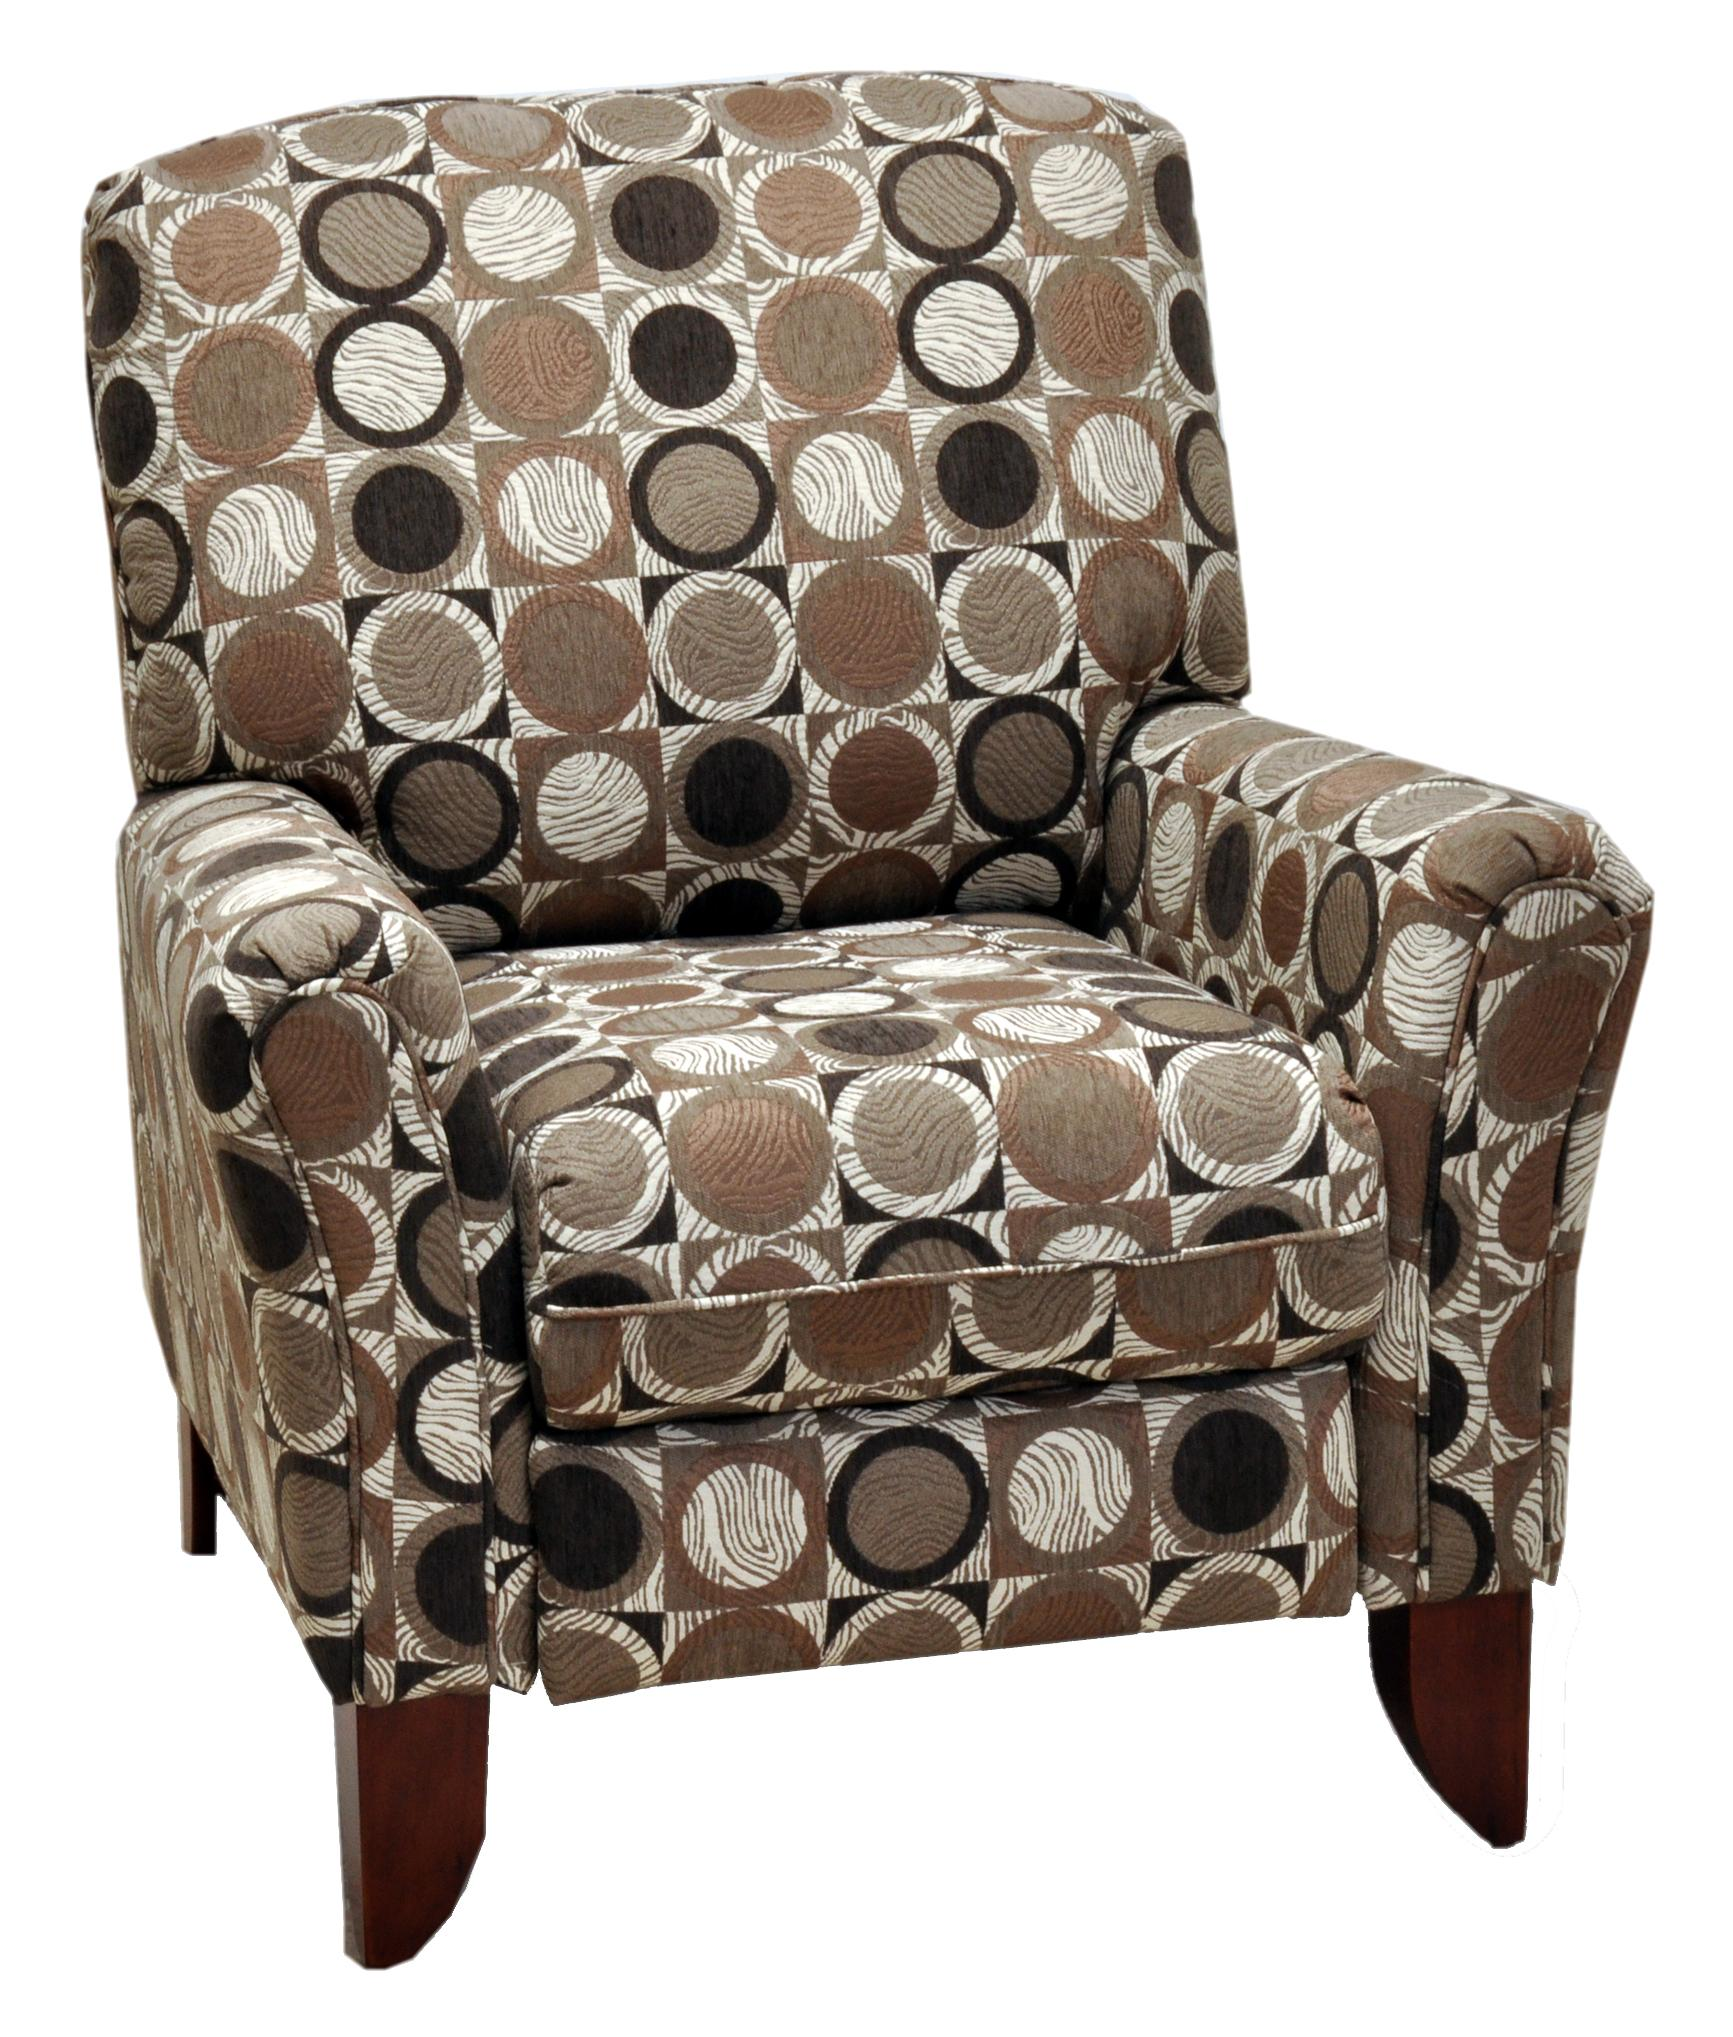 . Franklin High and Low Leg Recliners Lola High Leg Recliner with